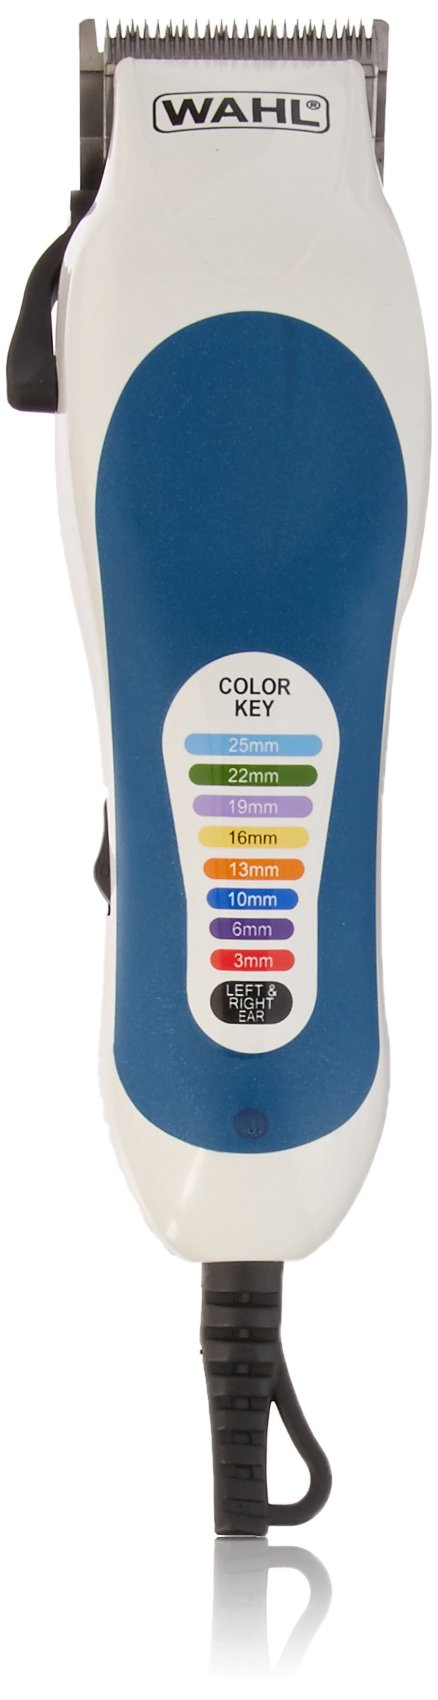 Wahl 79400 Color Coded Pro 20 Piece Haircutting Kit, 220 Volts by WAHL